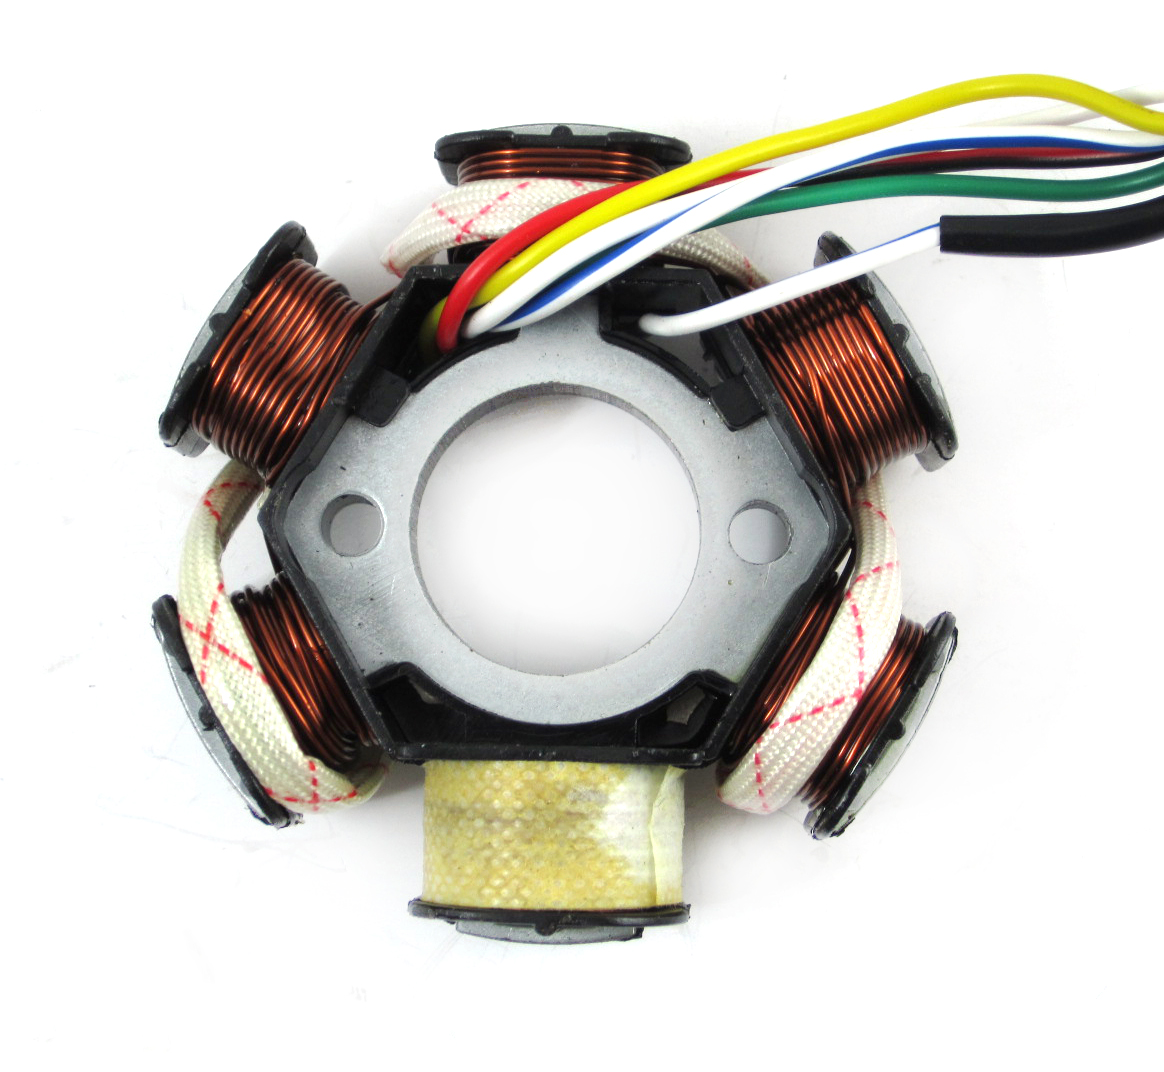 chinese stator magneto 6 coil for 50cc 110cc 125cc scooter